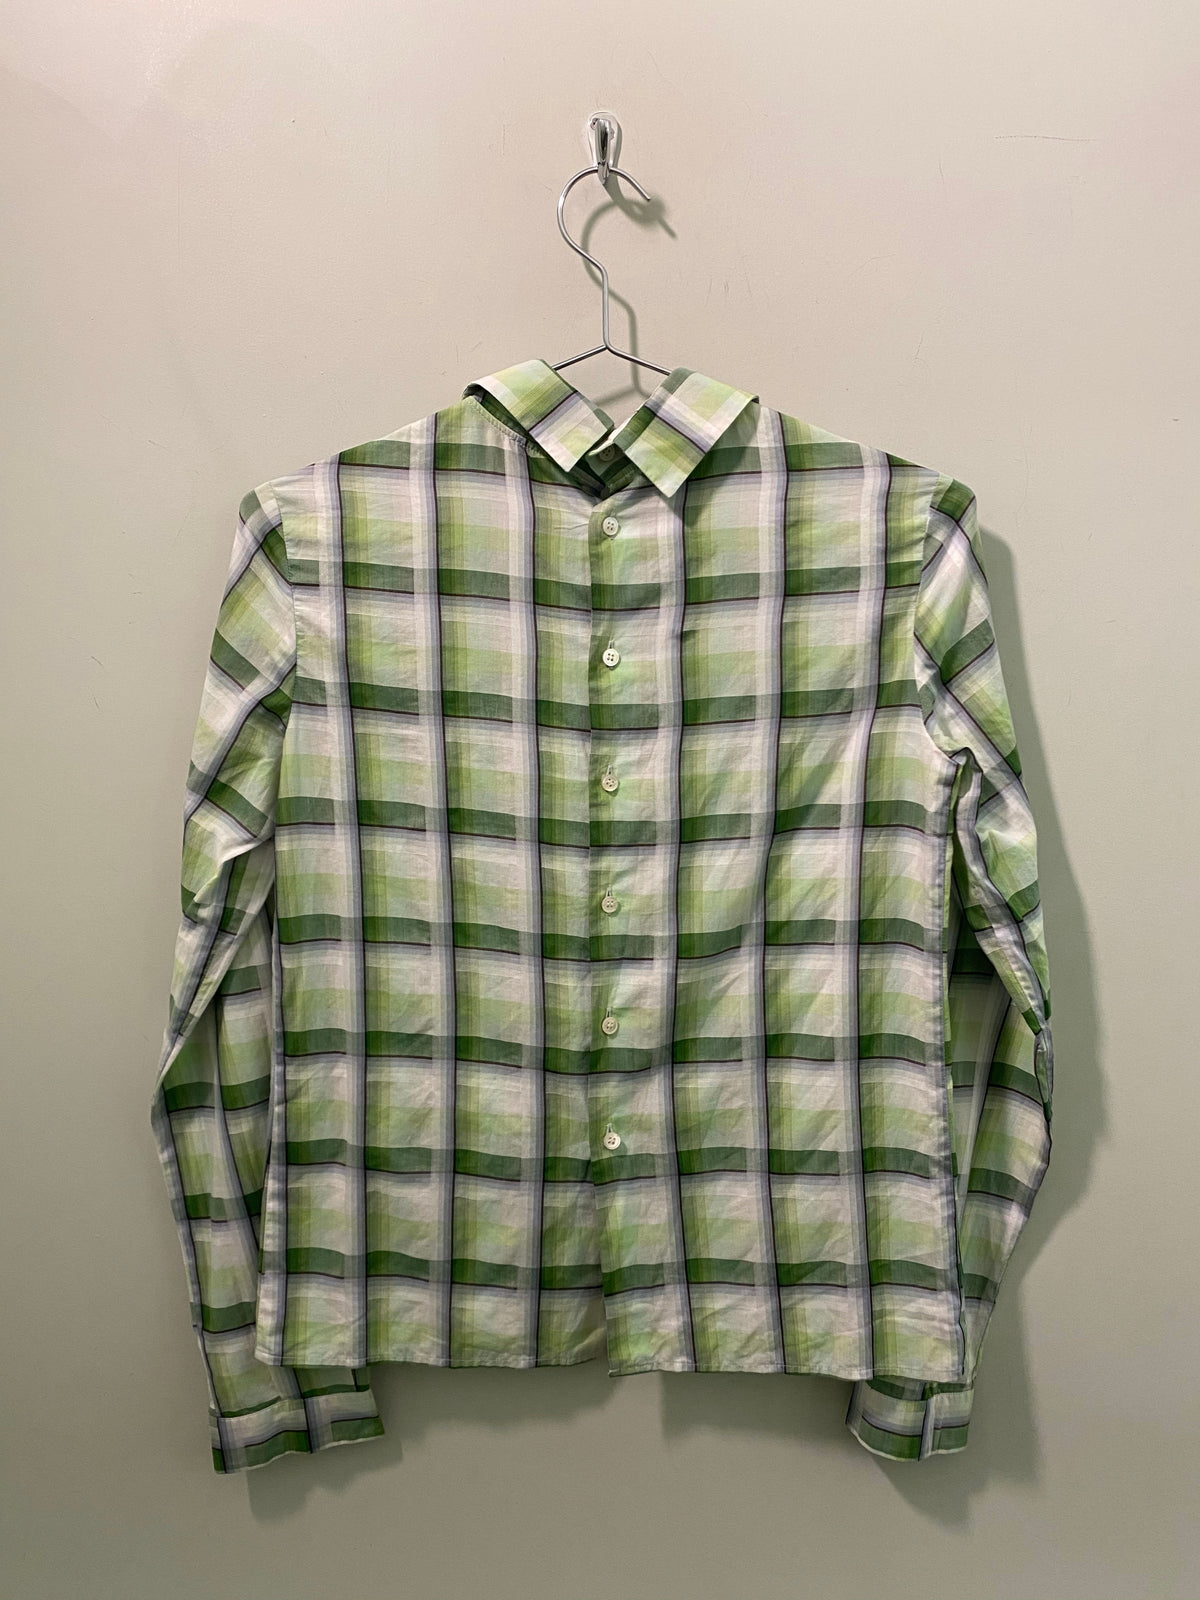 Miu Miu Green Check Shirt